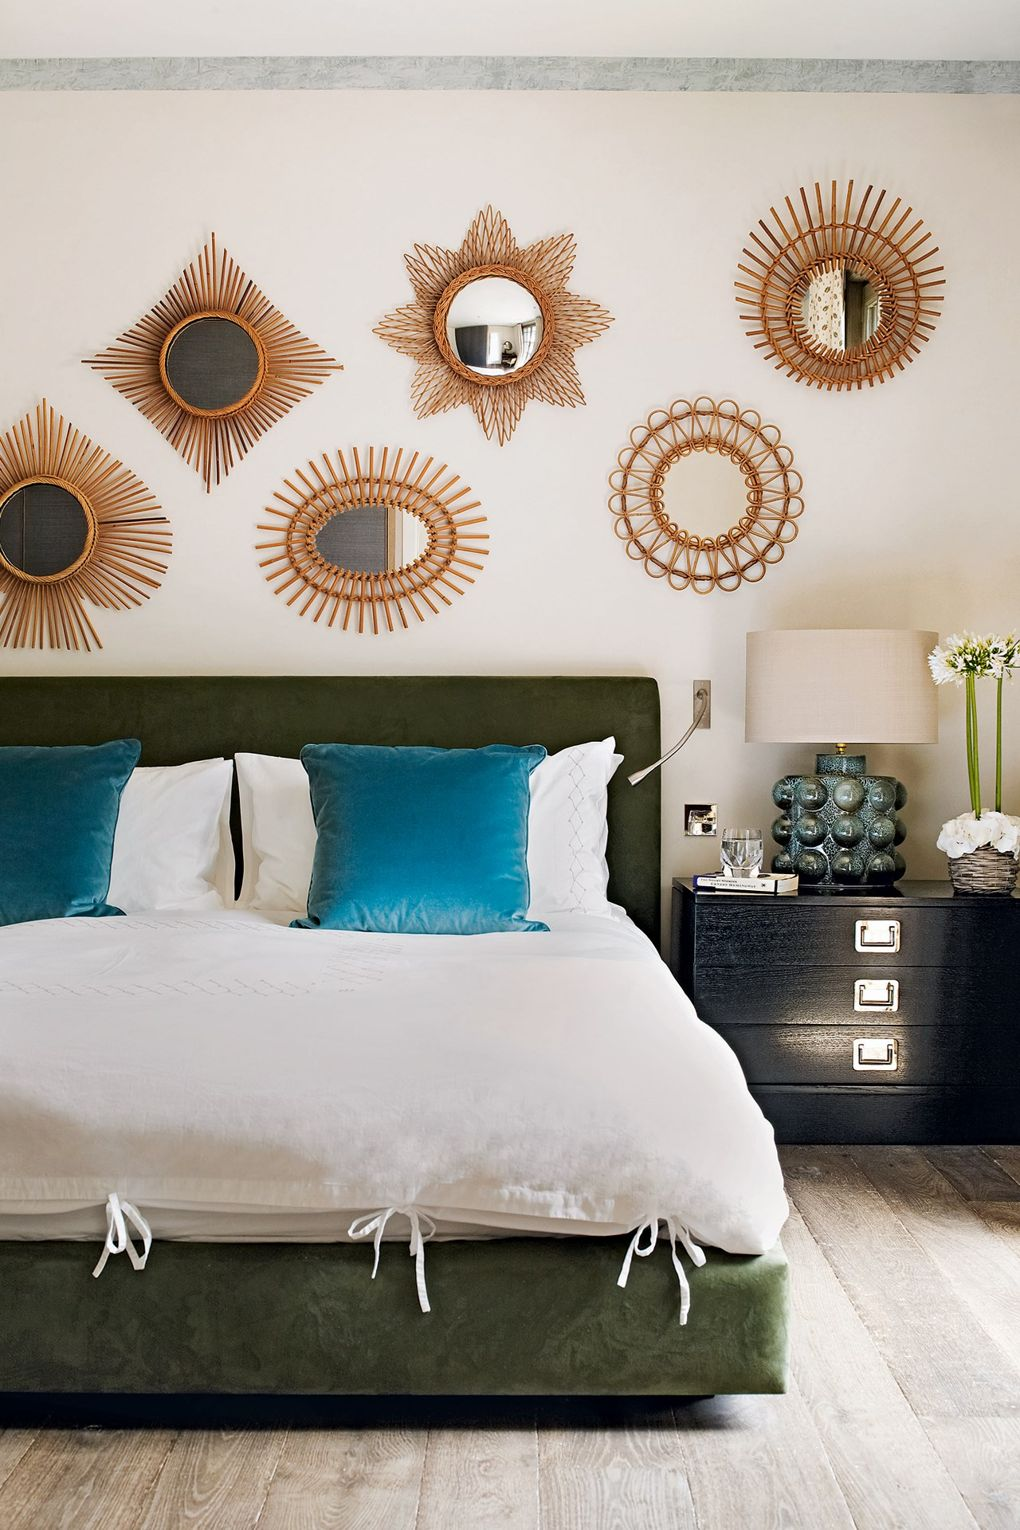 Best Mirror Idea To Decorate Your Home In A Big Way